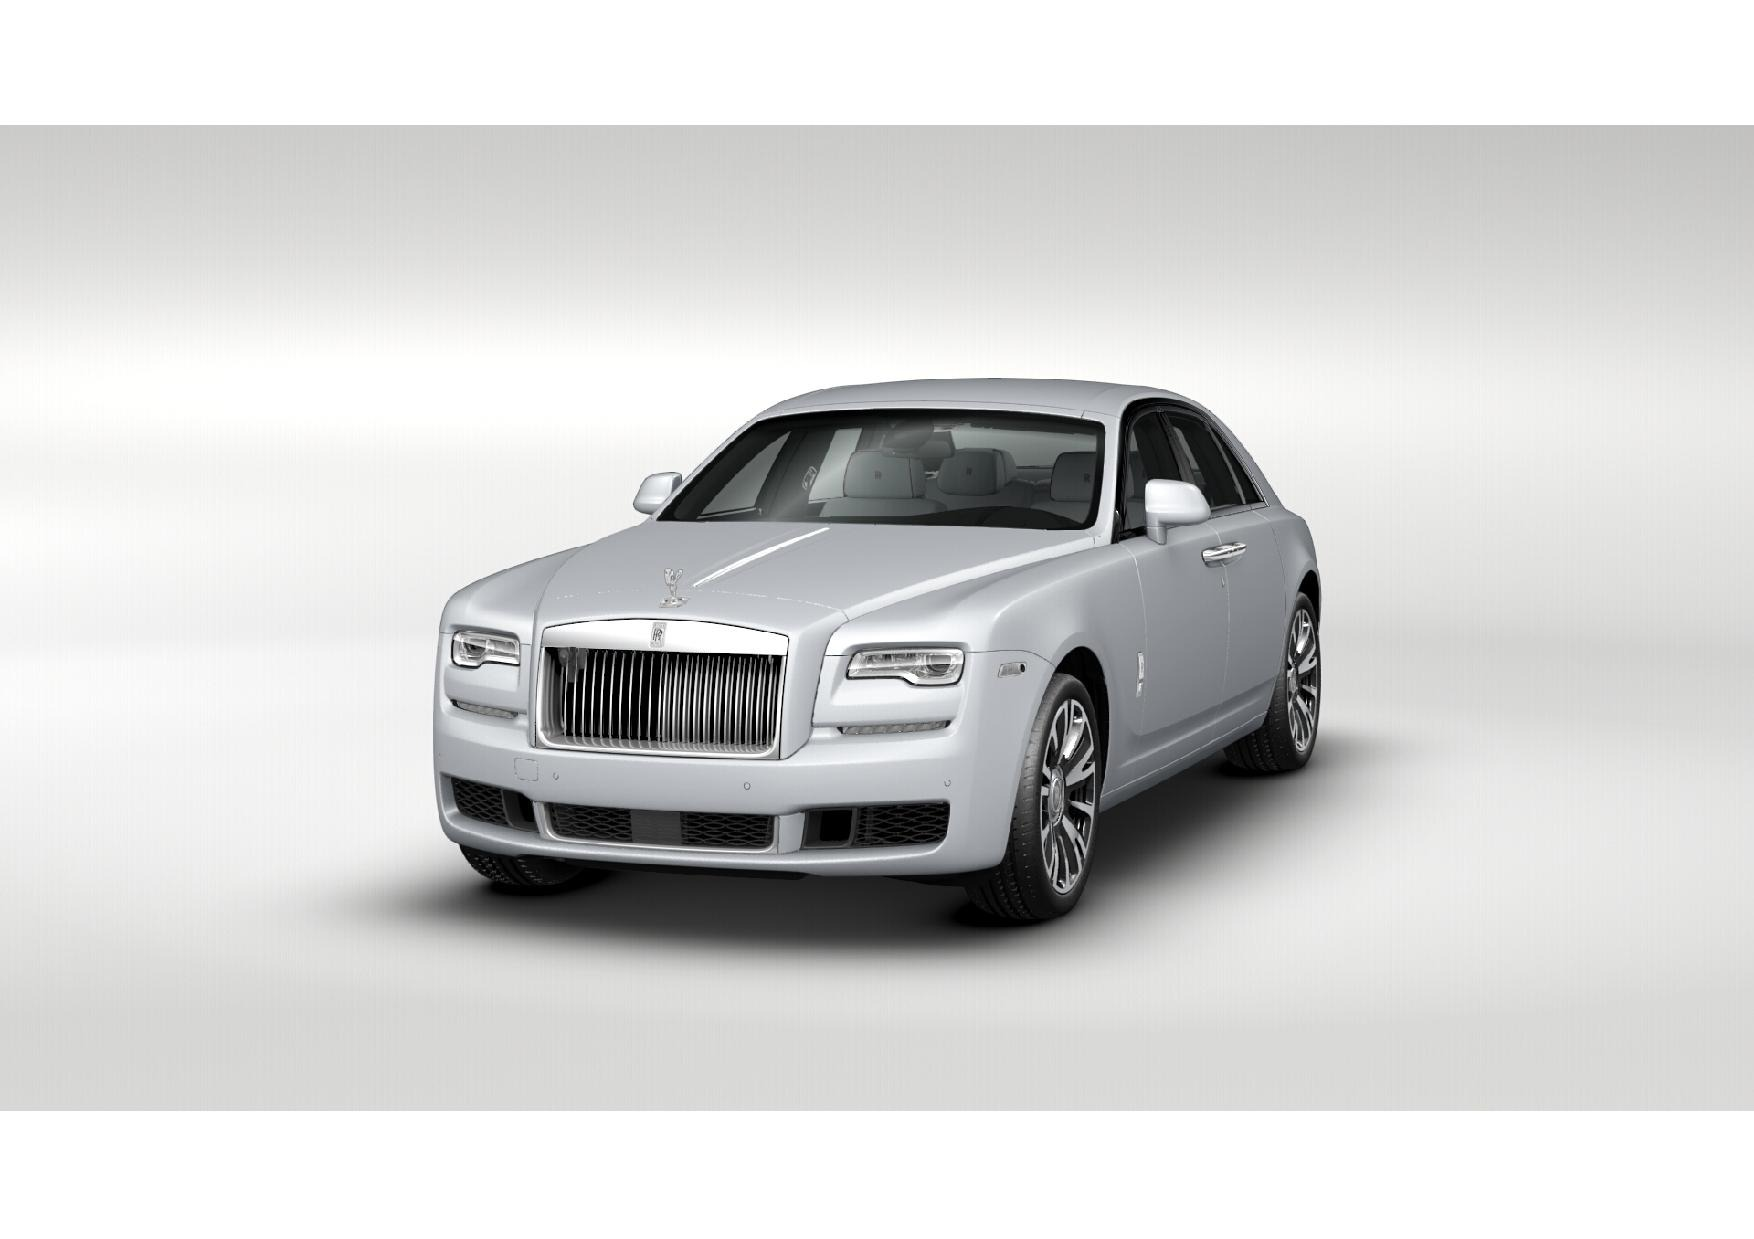 New 2019 Rolls-Royce Ghost for sale $428,900 at Bentley Greenwich in Greenwich CT 06830 1